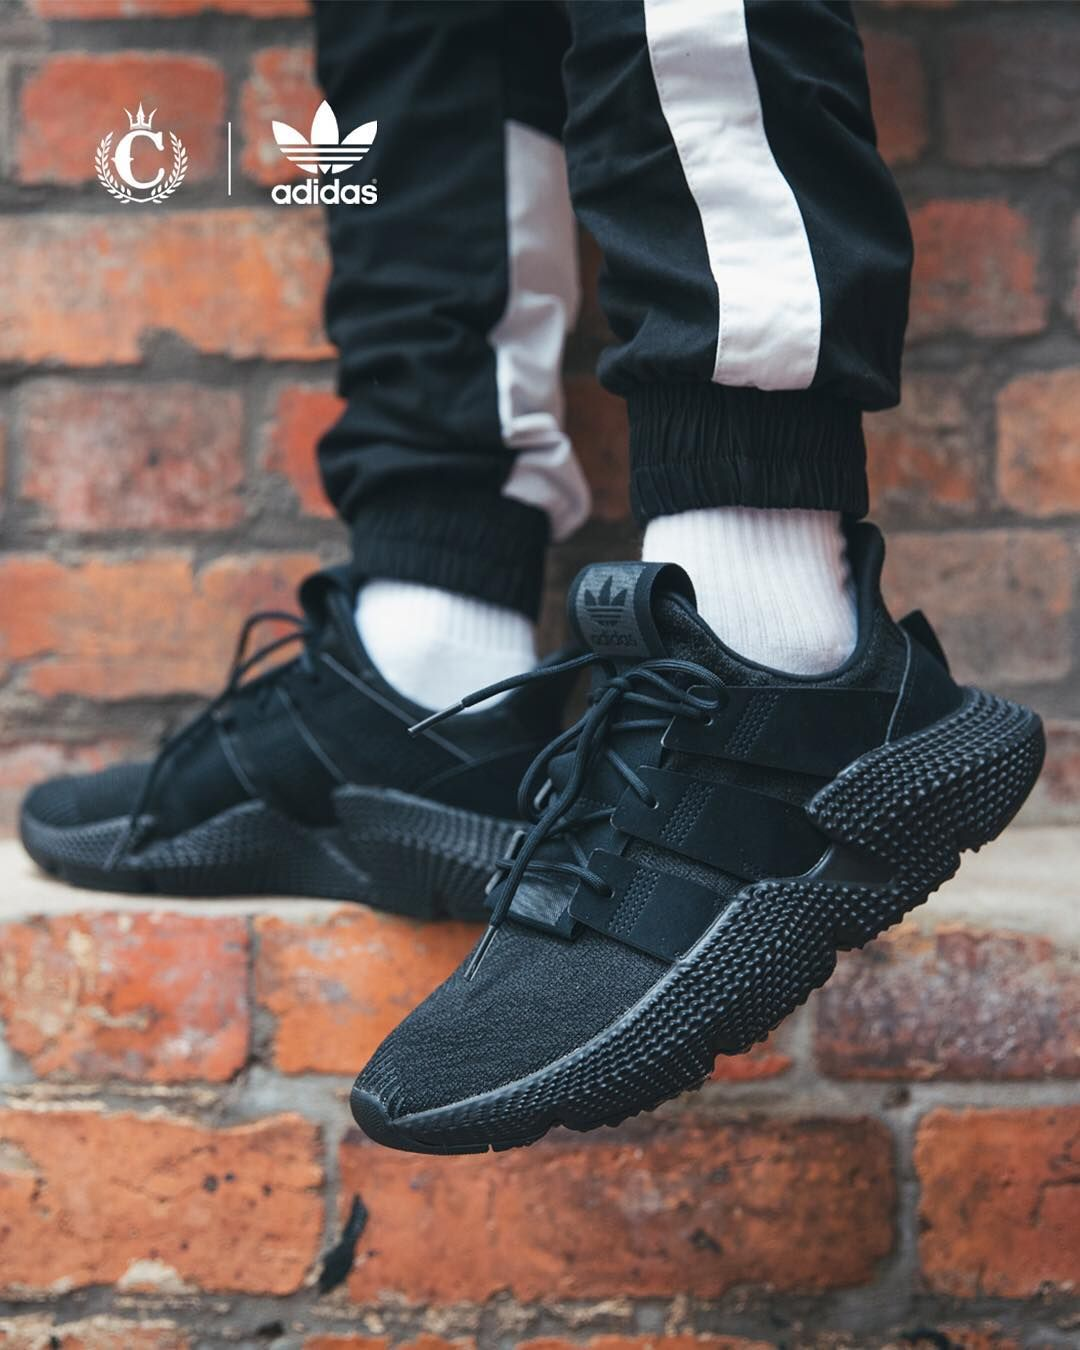 43be1be033f I'd much Prophere these.. 🔥 - $44.99 on AfterPay | SNK/SH in 2019 ...